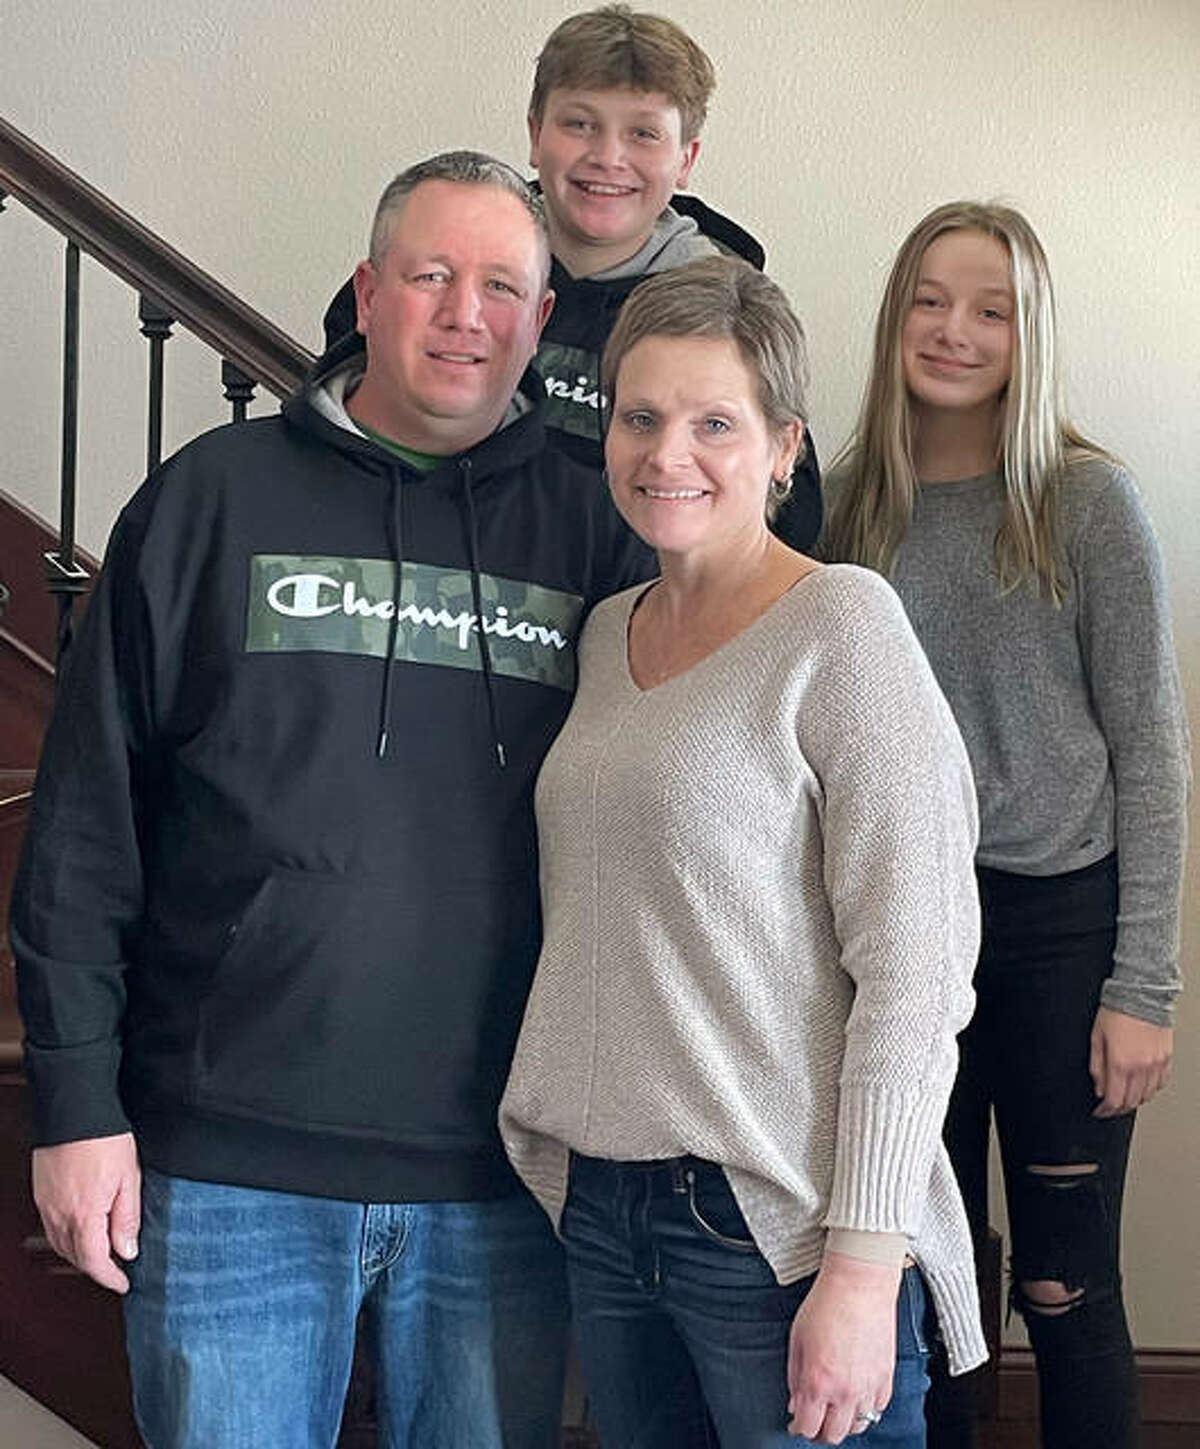 Beth Rull is pictrured in her Bunker Hill home along with her husband, Brandon, their son, Nick, and their daughter, Sophie.